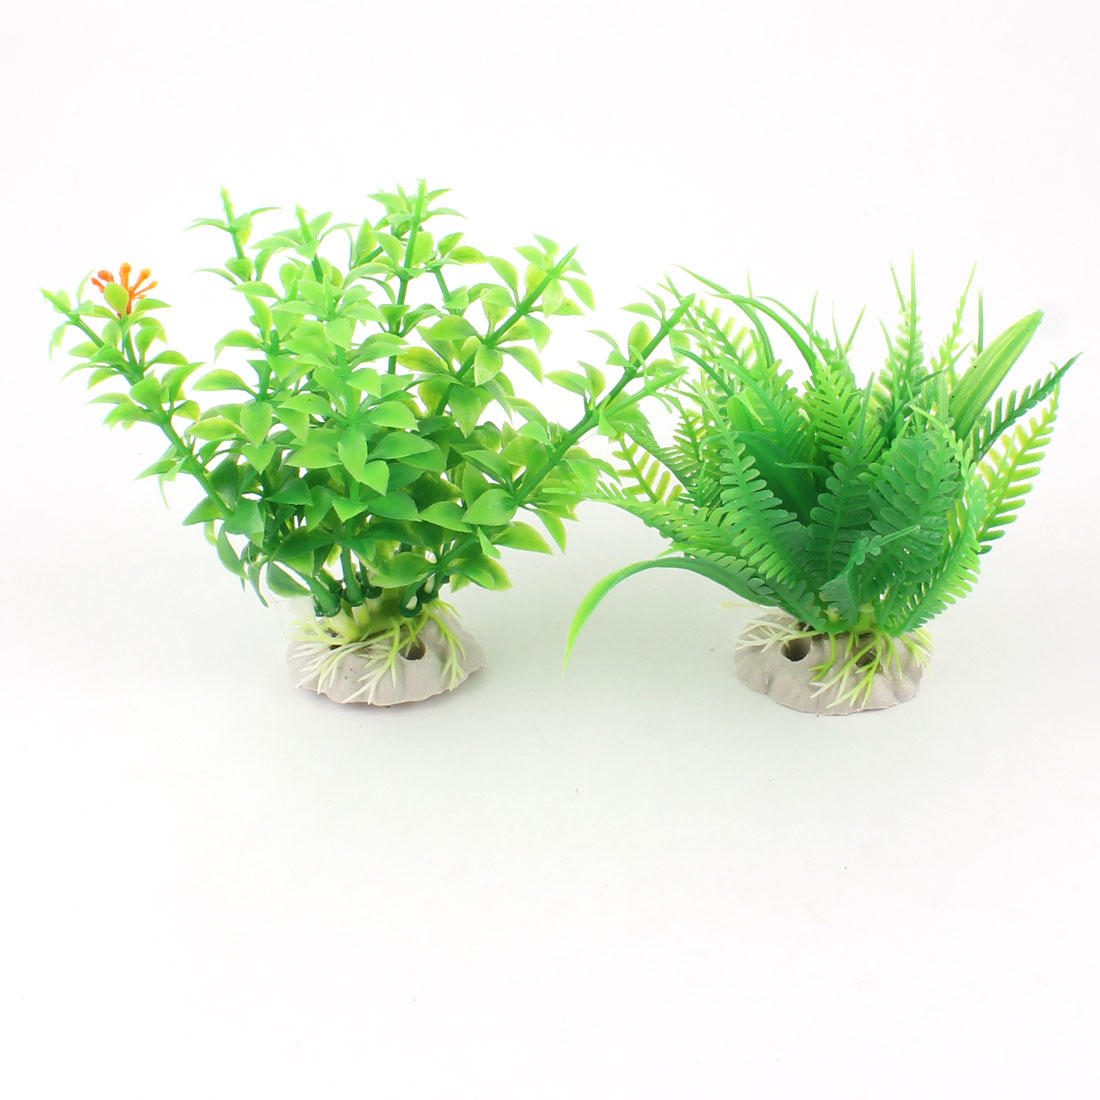 "2 Pcs 4.3"" Height Artificial Fish Tank Aquarium Plants Green w Ceramic Base"